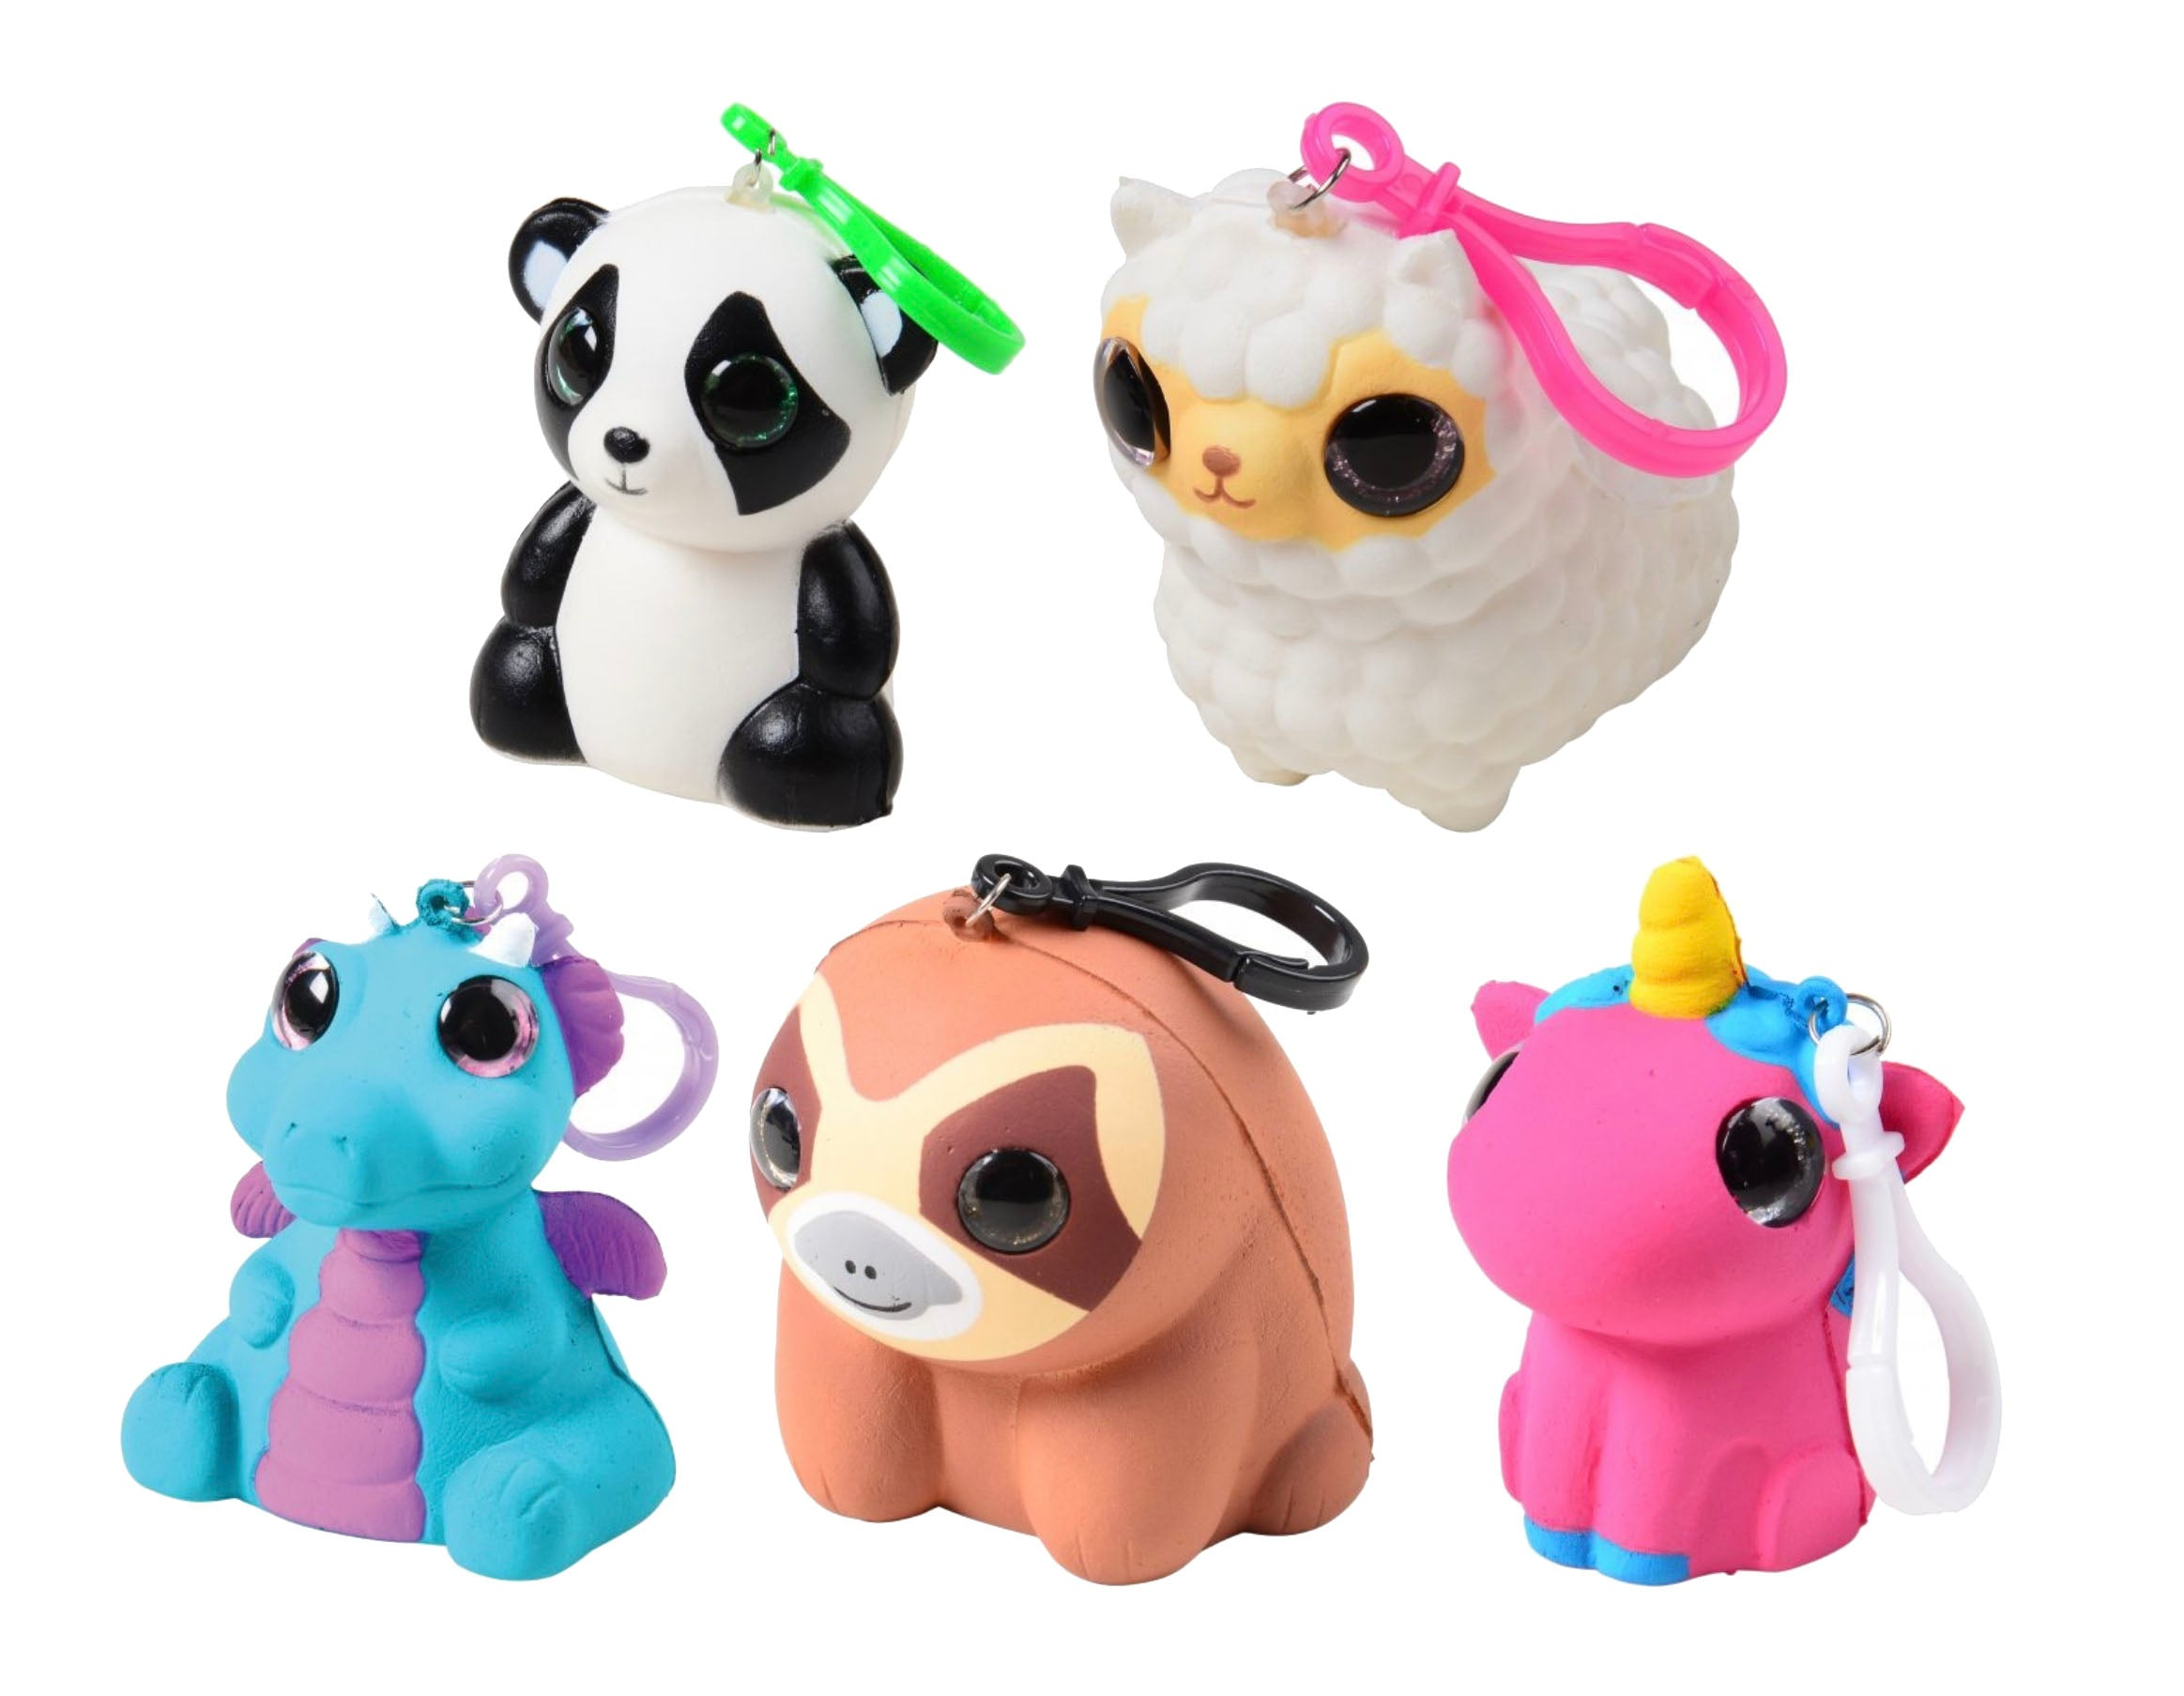 Slow Rise Memory Foam Animals - Adorable Clips with Glitter Eyes -  Keychain Purse Backpack Bag Charm Toy